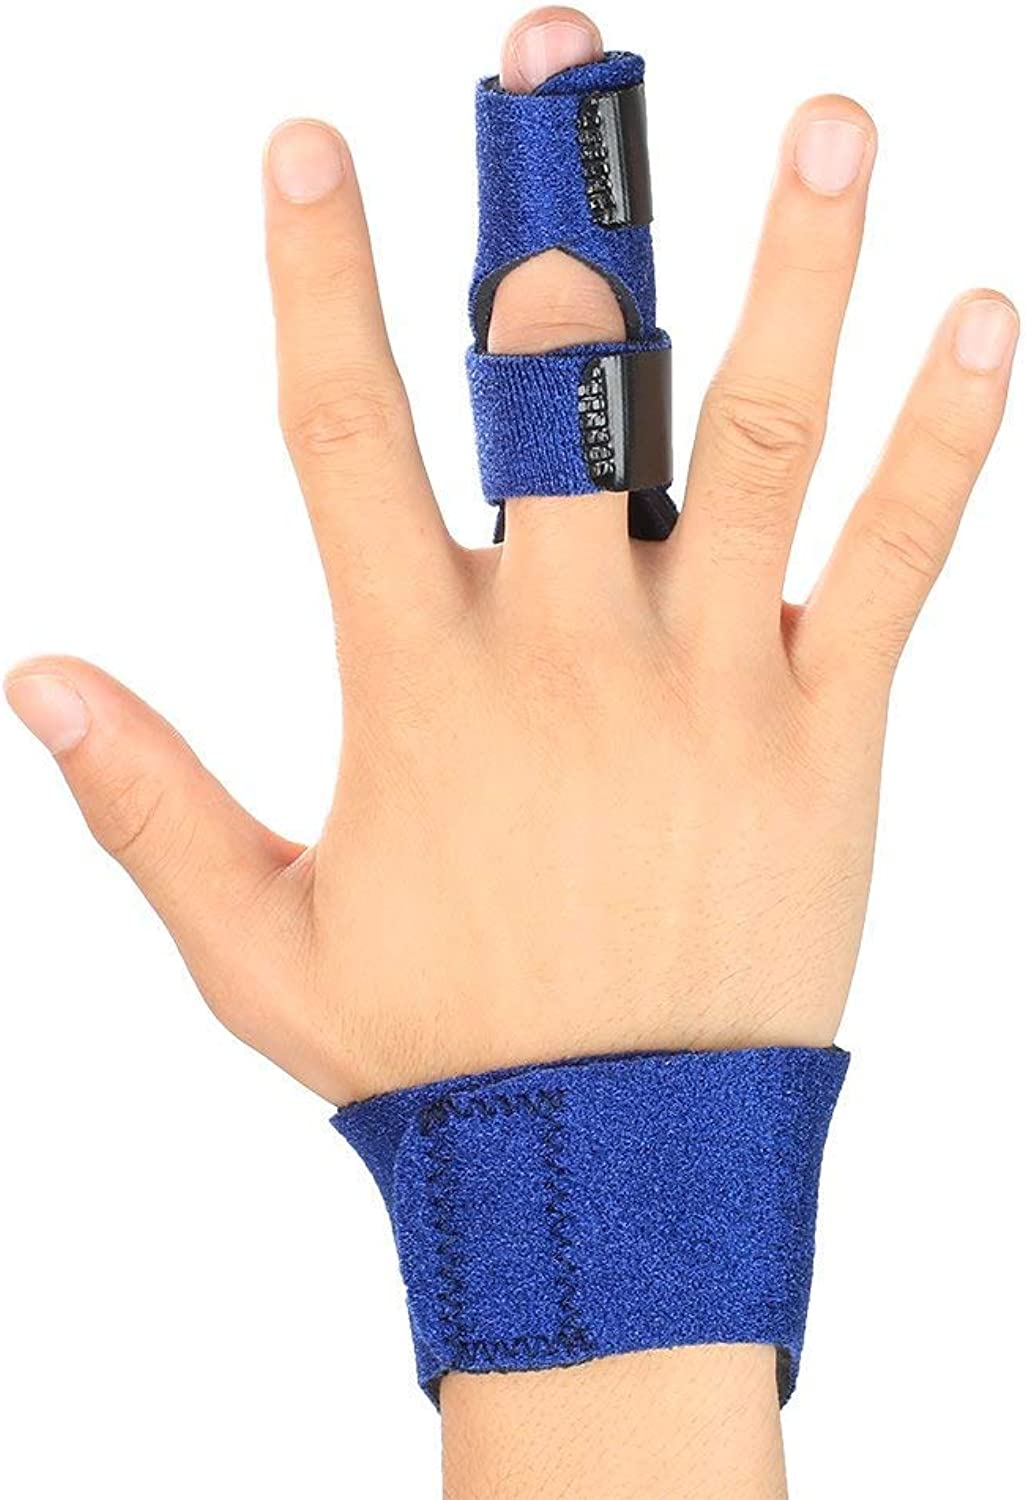 Finger Extension Splint Support Brace for Trigger PostOperative Care and Pain Relief Malleable Metallic Hand